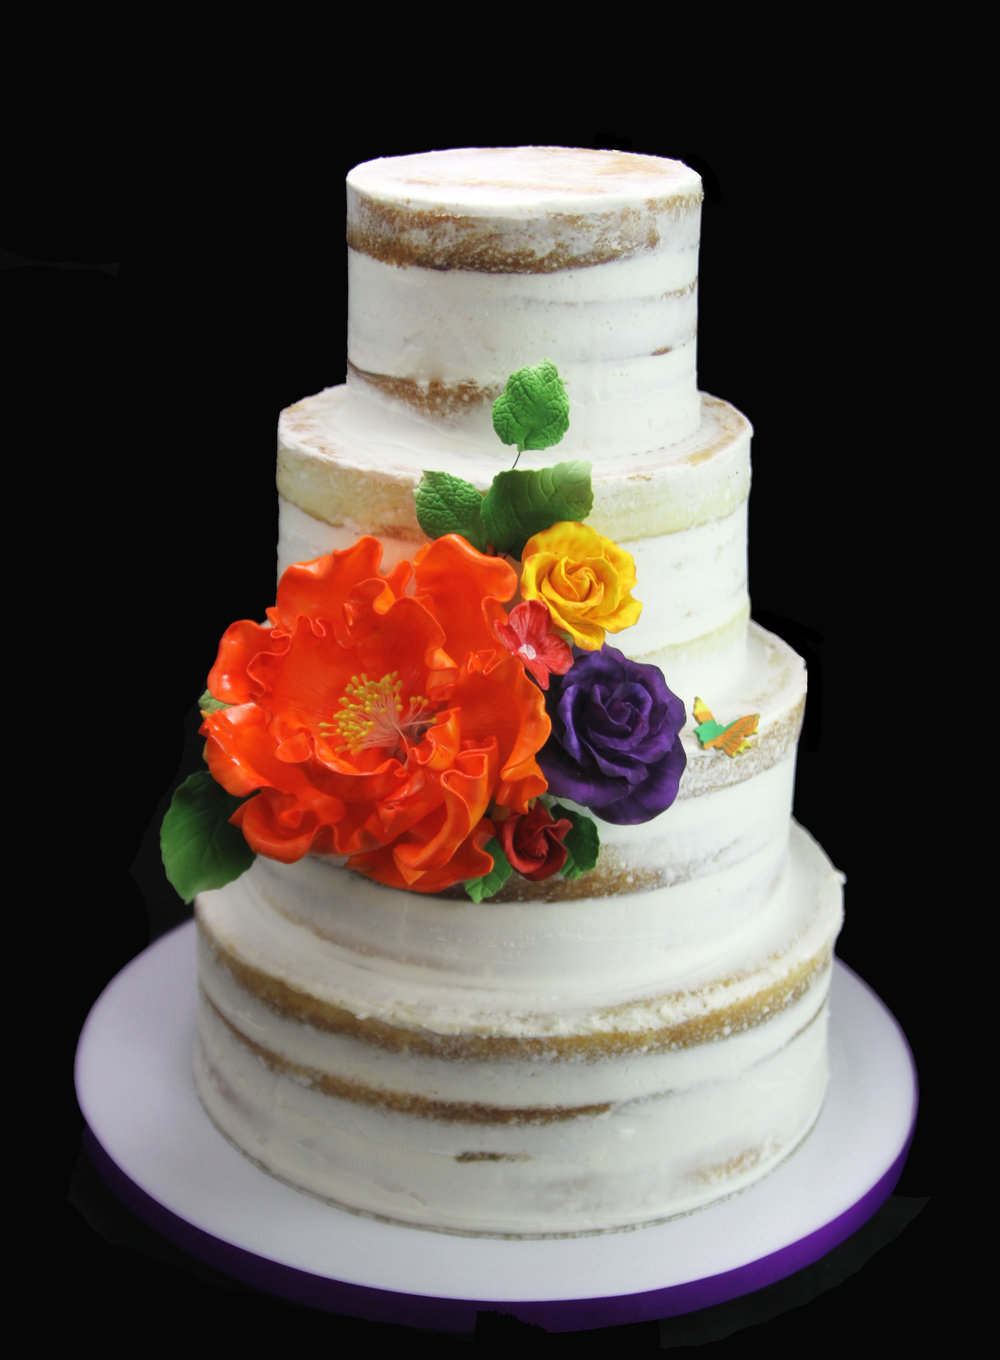 Crumb Coat Wedding Cake with Large Peony.jpg